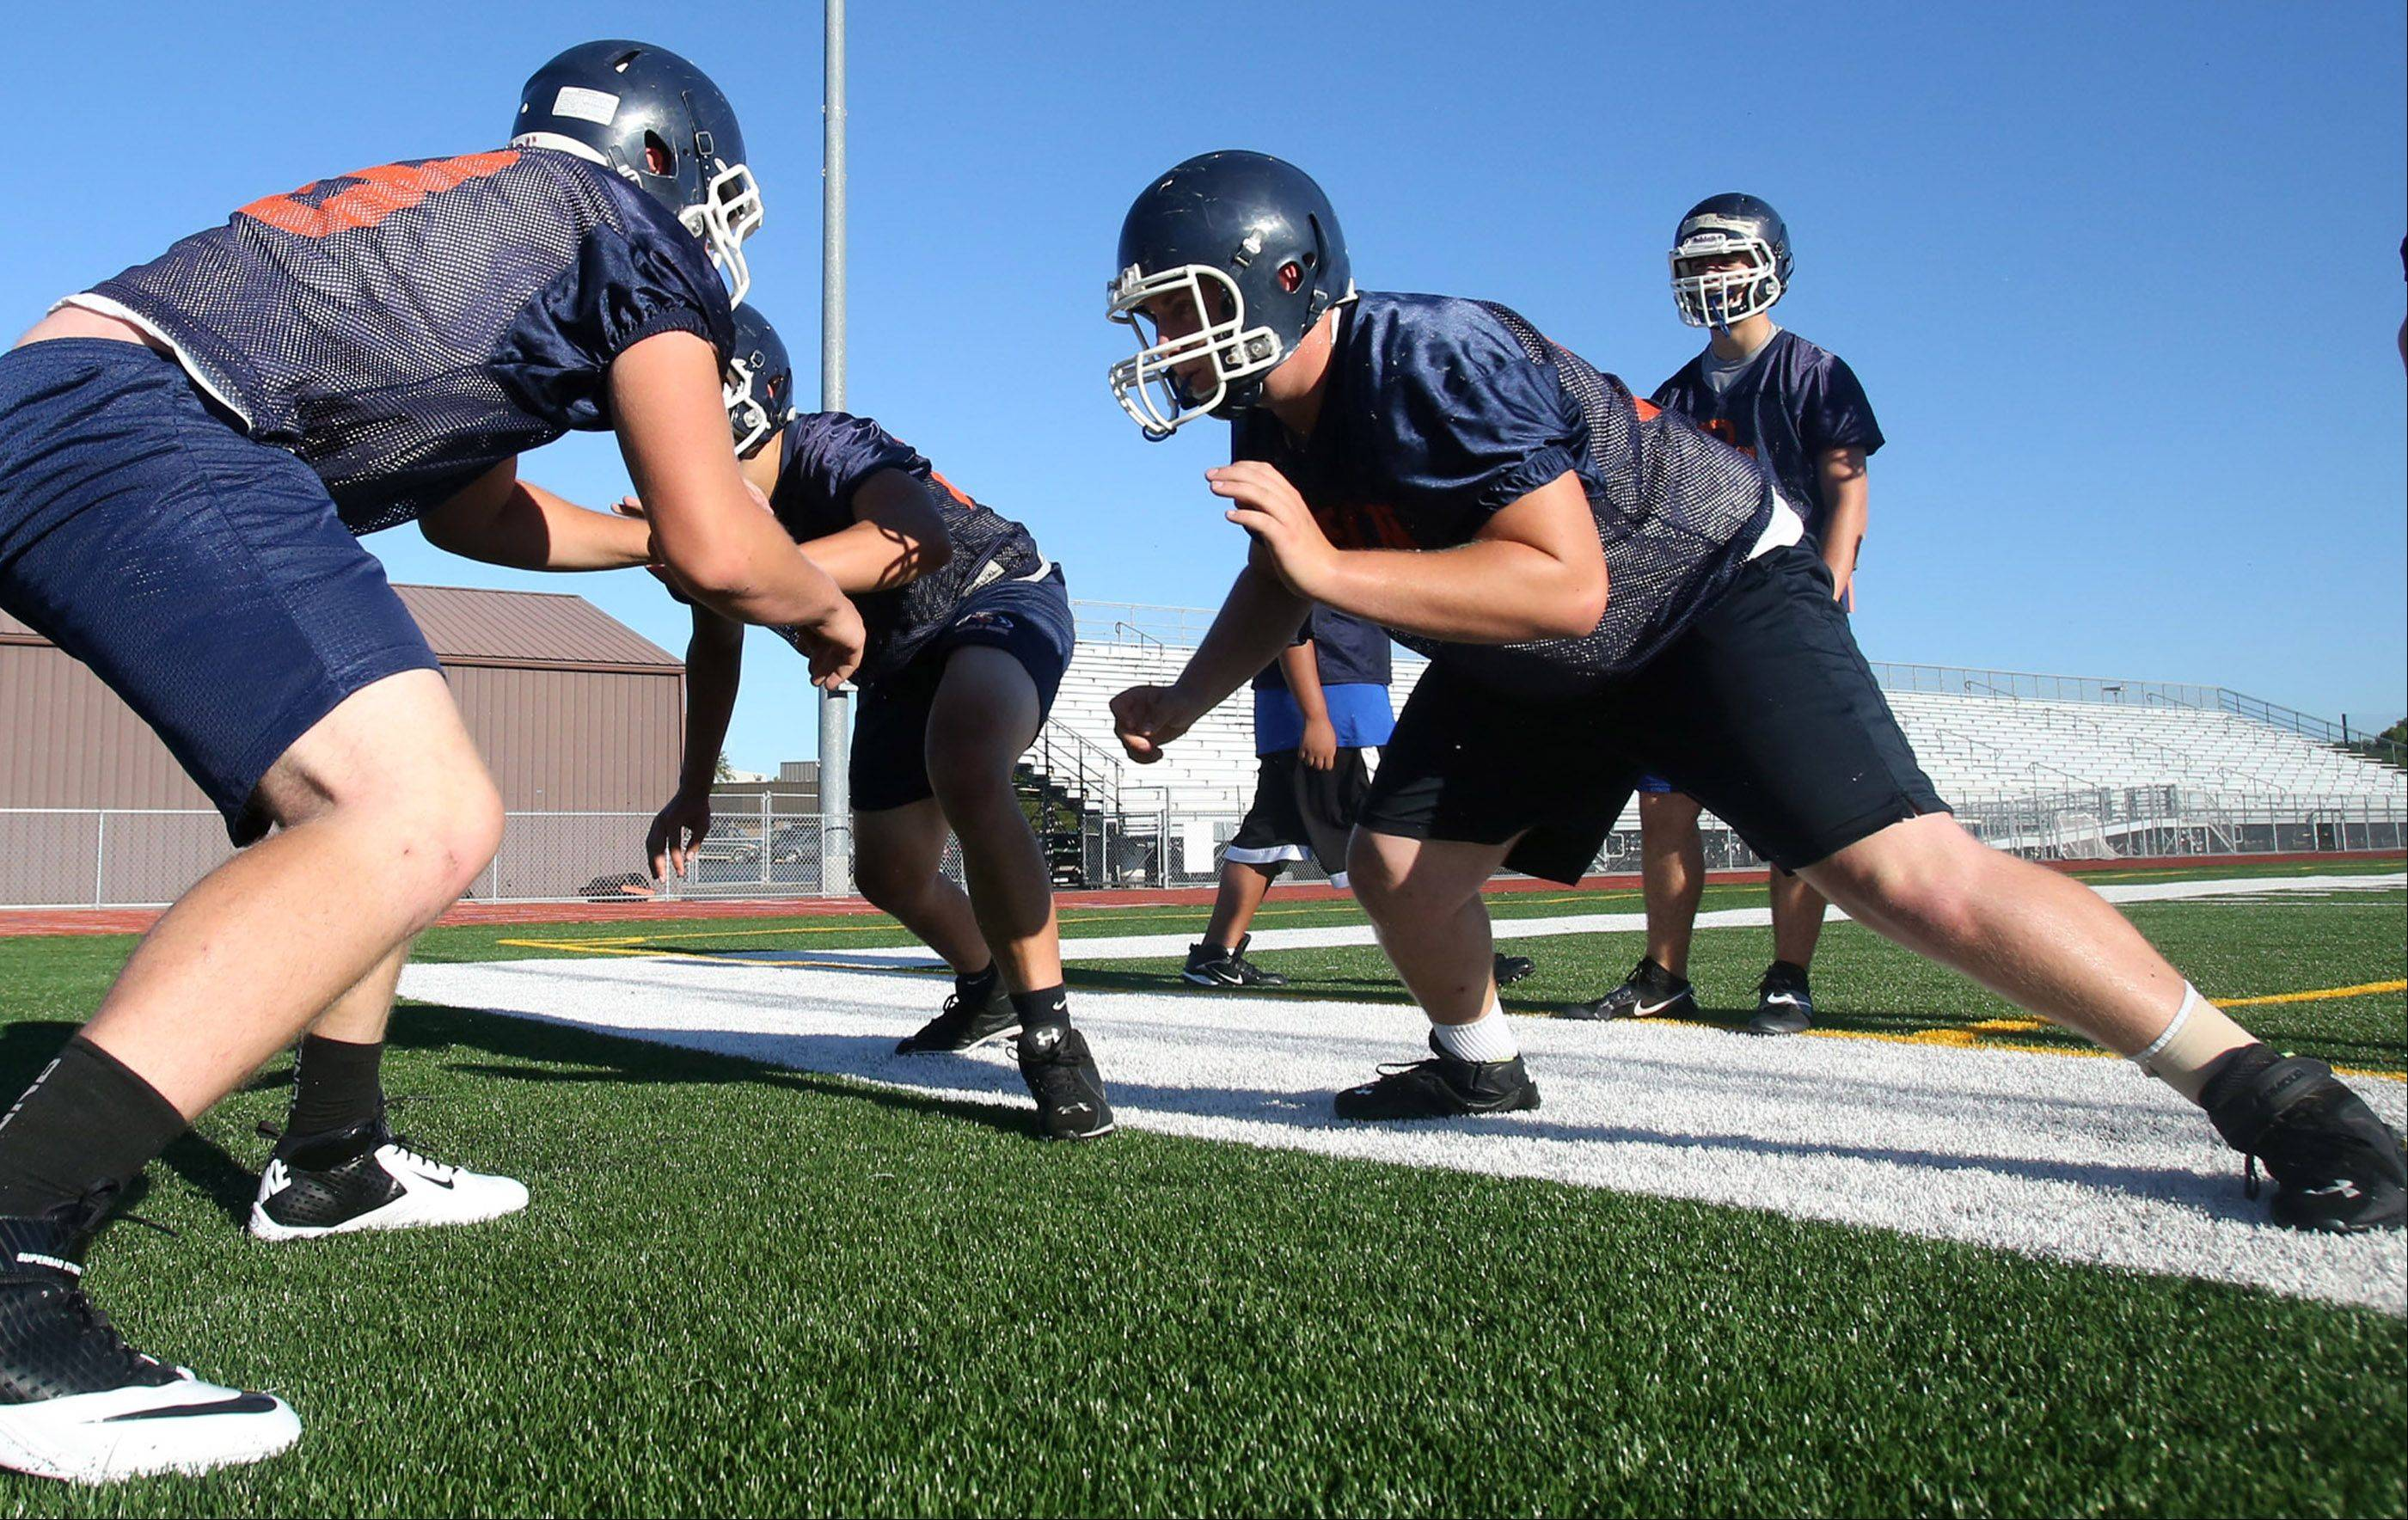 Aaron Schubert, right, in drills against defensive players at Buffalo Grove.